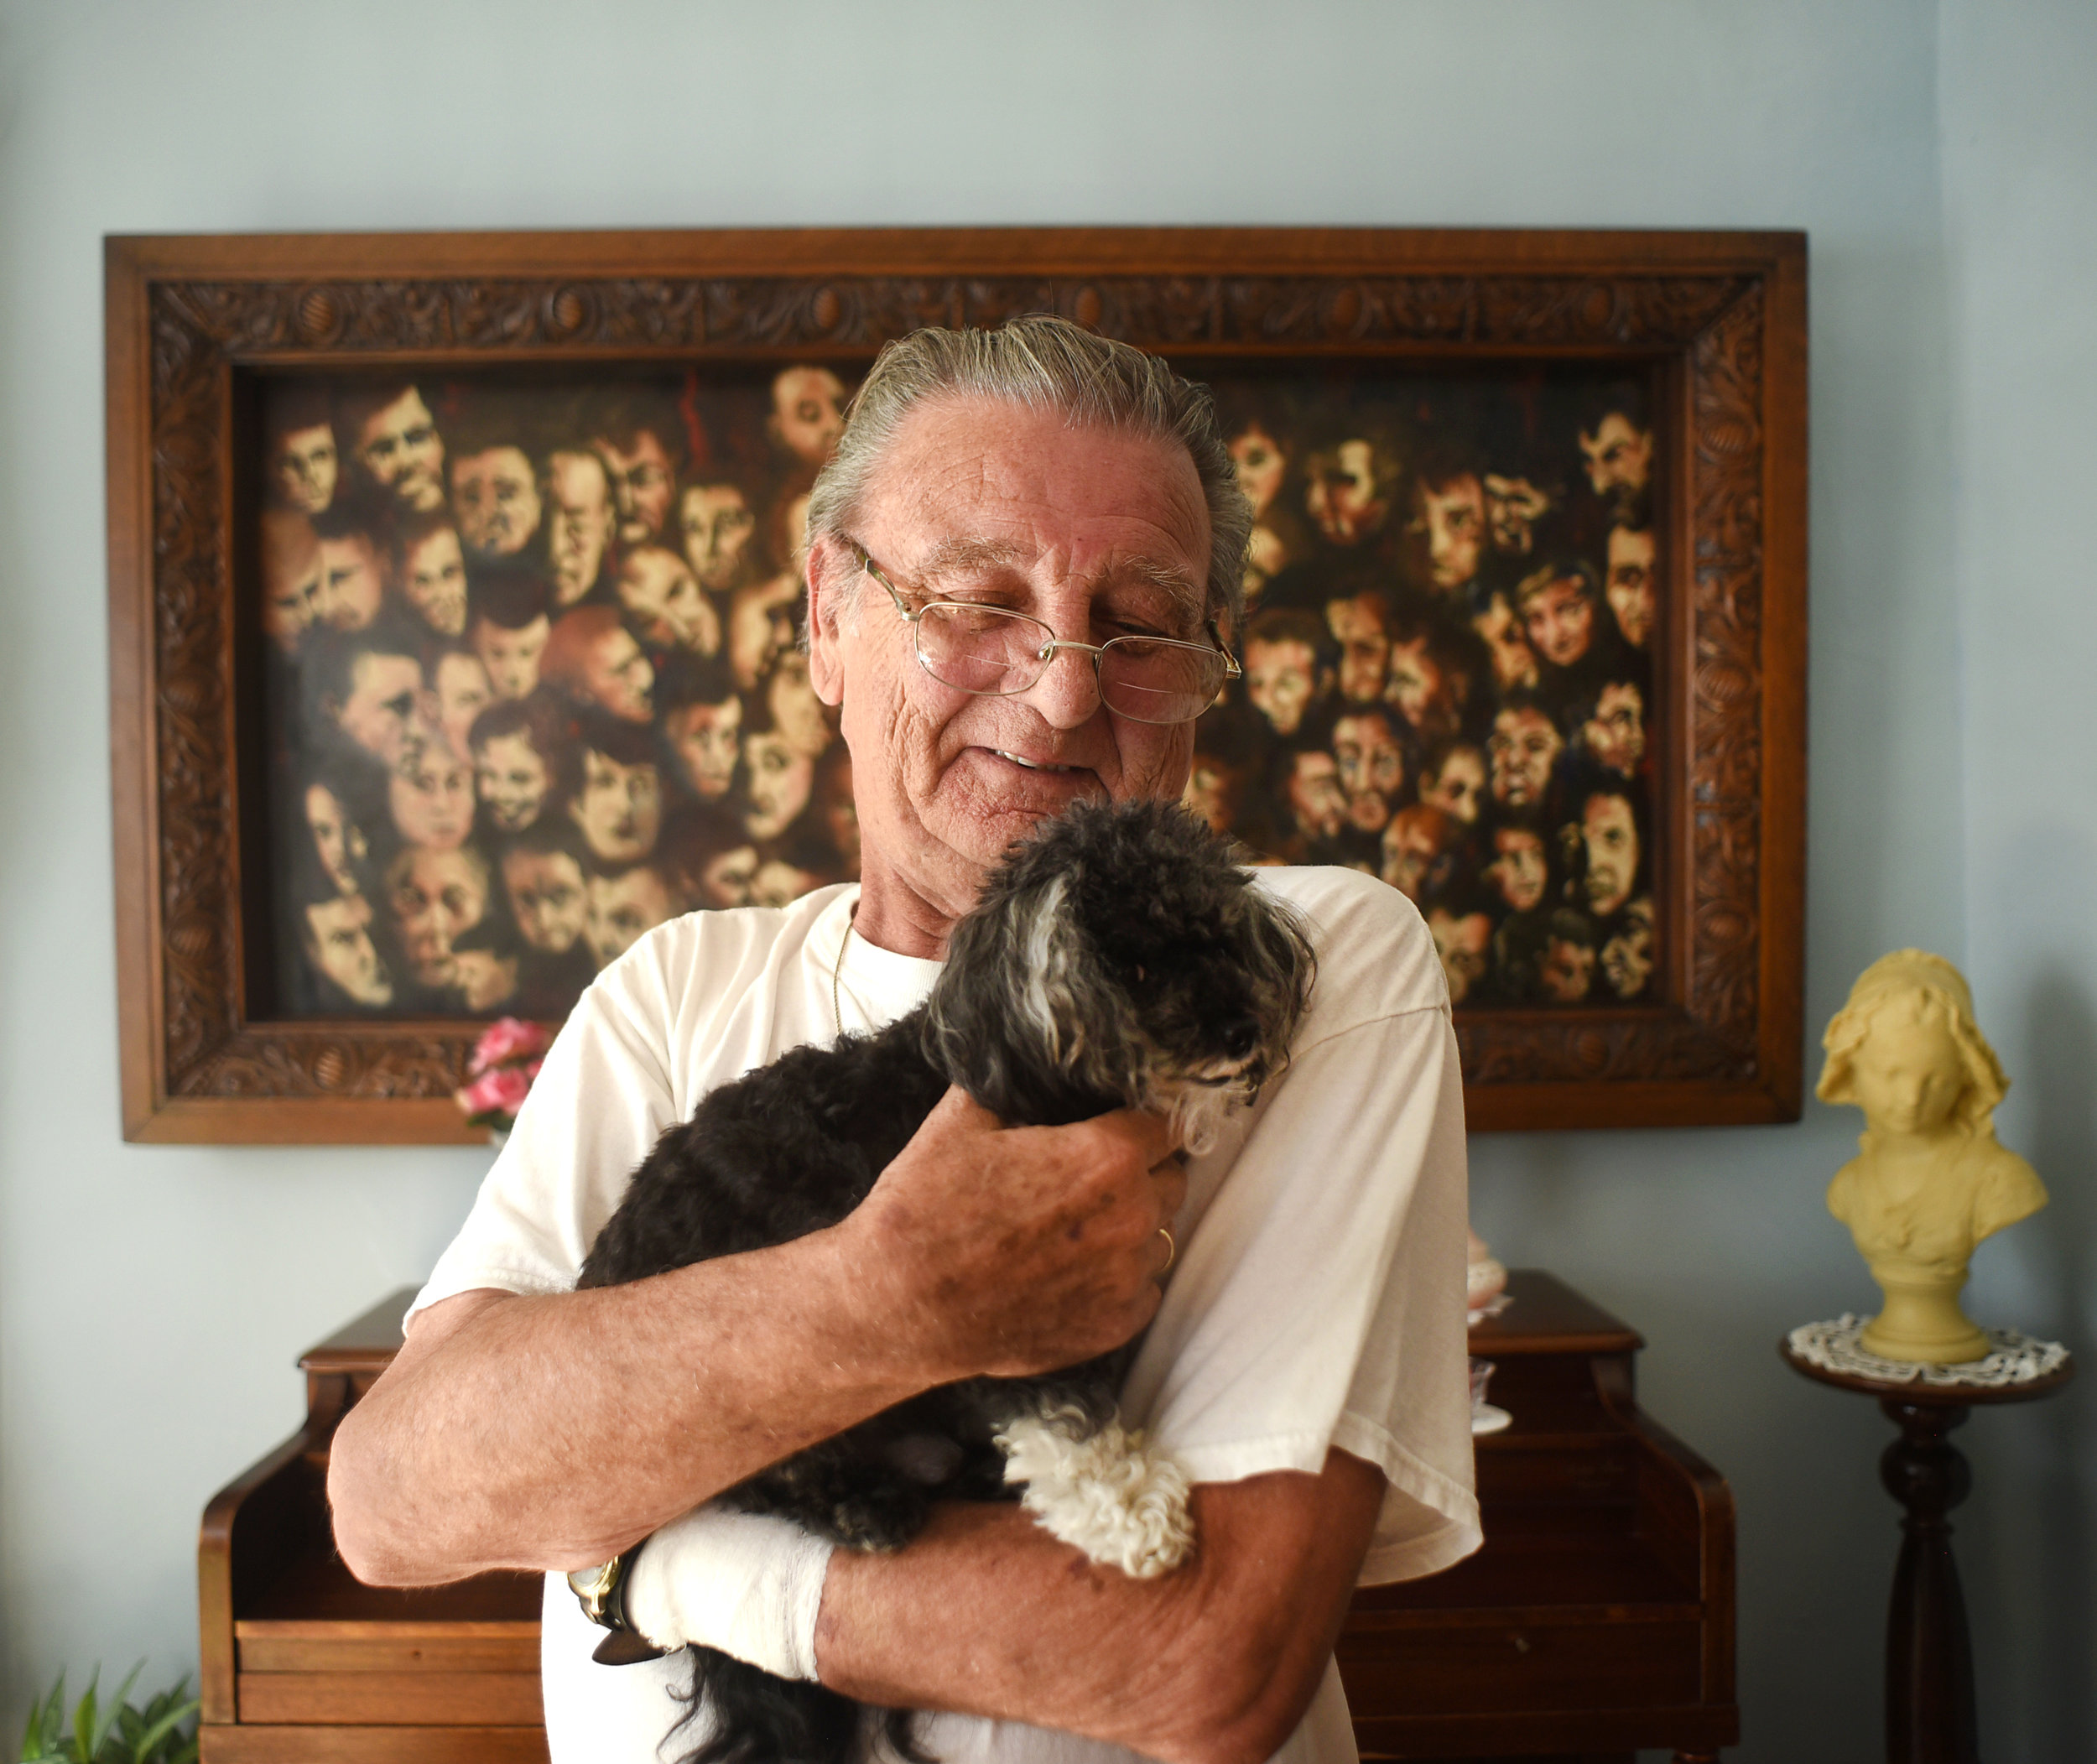 """Robert Verdonck, a Flemish painter,holds his dog, Tobias, a nine-year-old teacup poodle and shihtzu mix, in front of one of his paintings in his home July 7, 2016. """"When I'm painting,"""" Verdonck said, """"I feel like I'm in my own kind of world."""""""